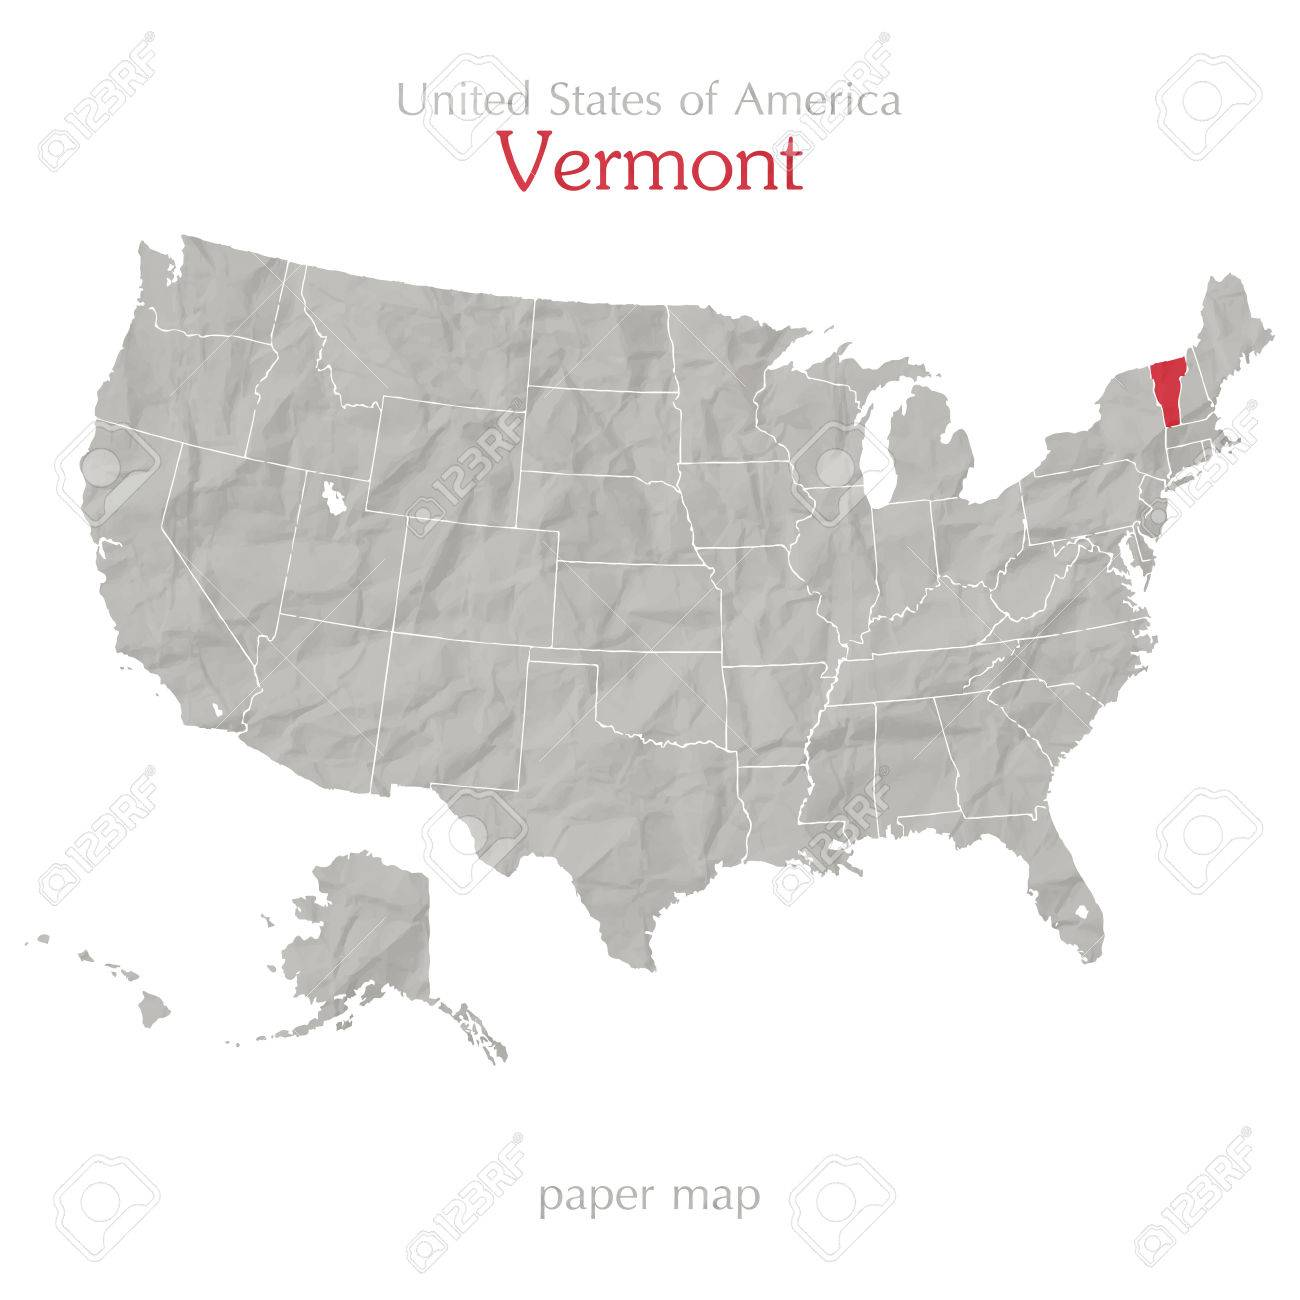 United State Of America Map.United States Of America Map And Vermont State Territory On Textured